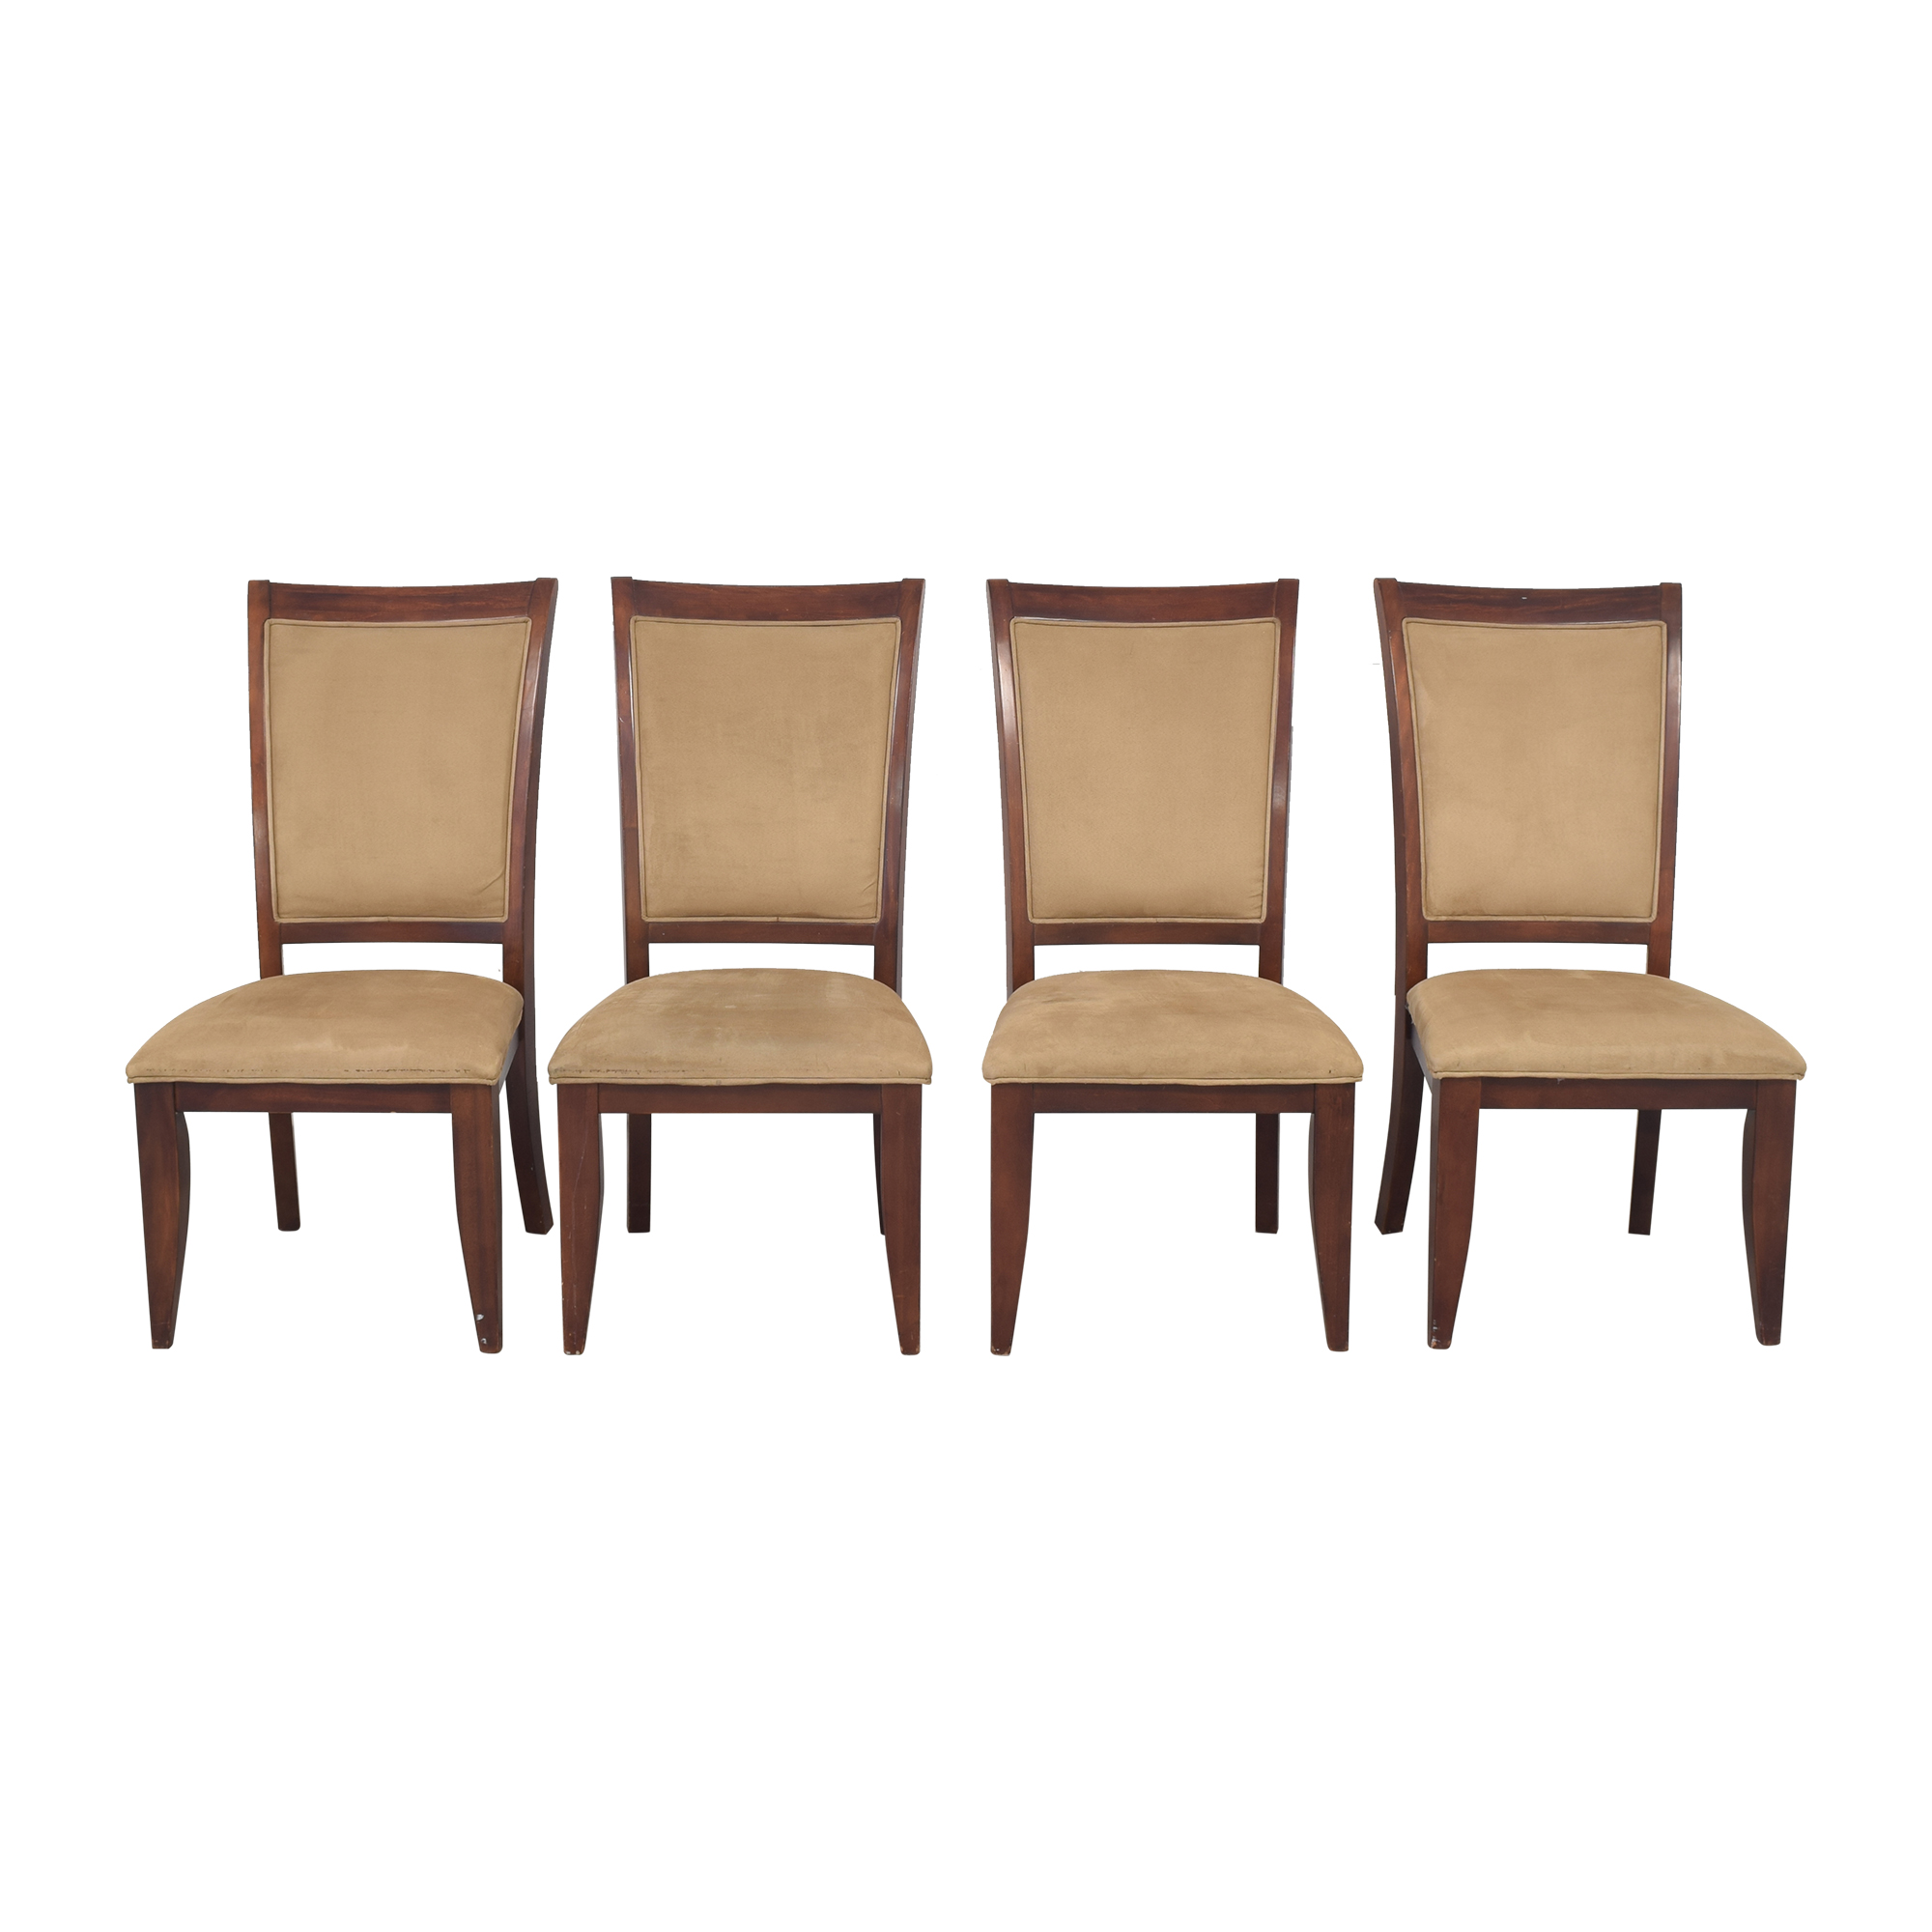 Legacy Classic Furniture Legacy Classic Upholstered Dining Chairs on sale